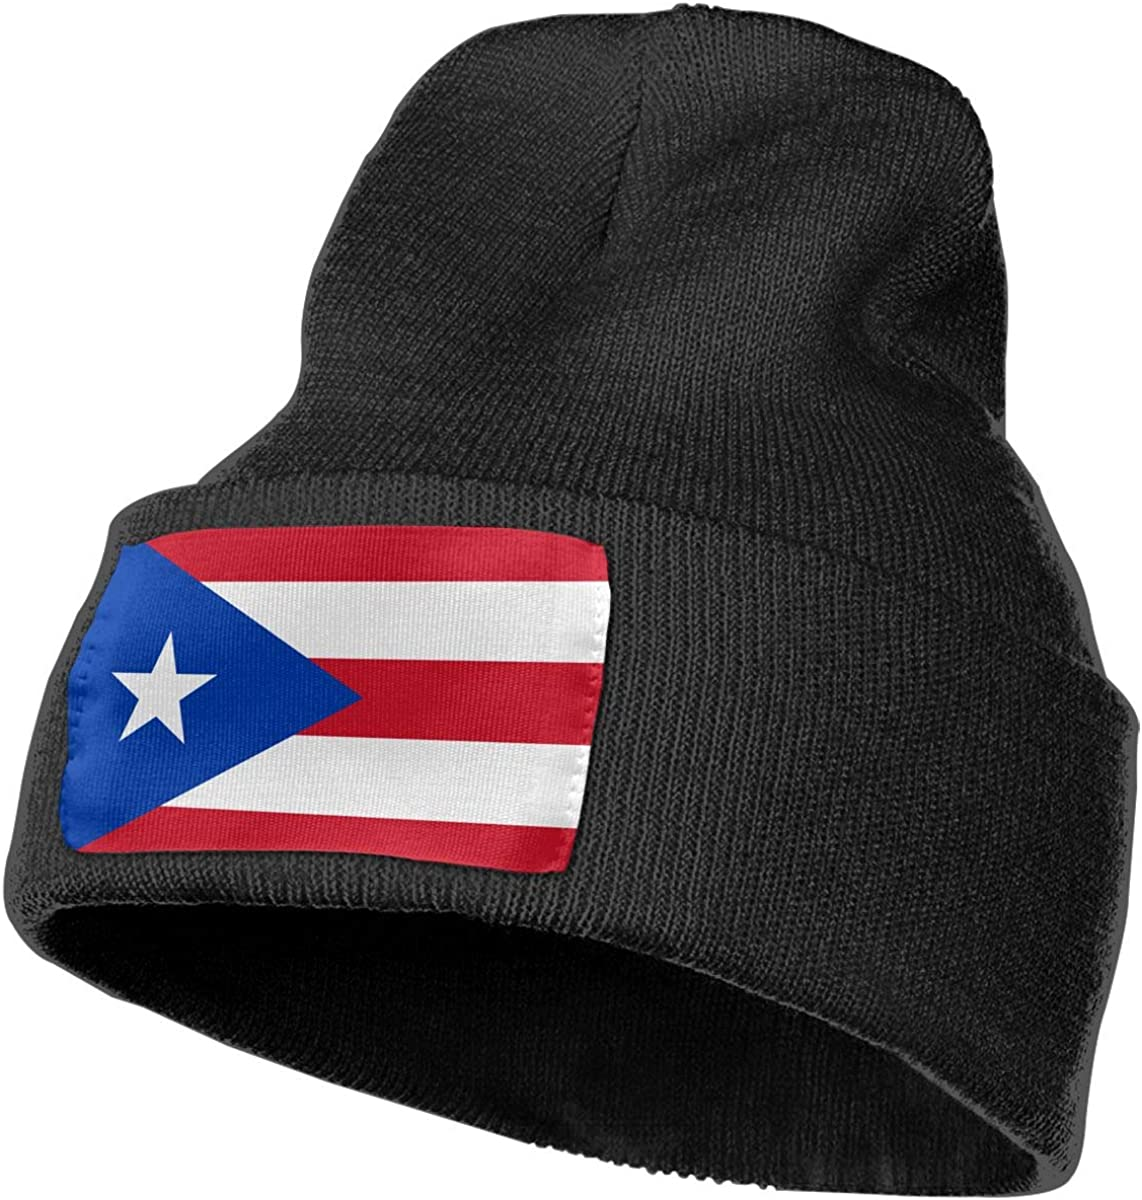 Unisex Puerto Rico Flag Outdoor Stretch Knit Beanies Hat Soft Winter Skull Caps